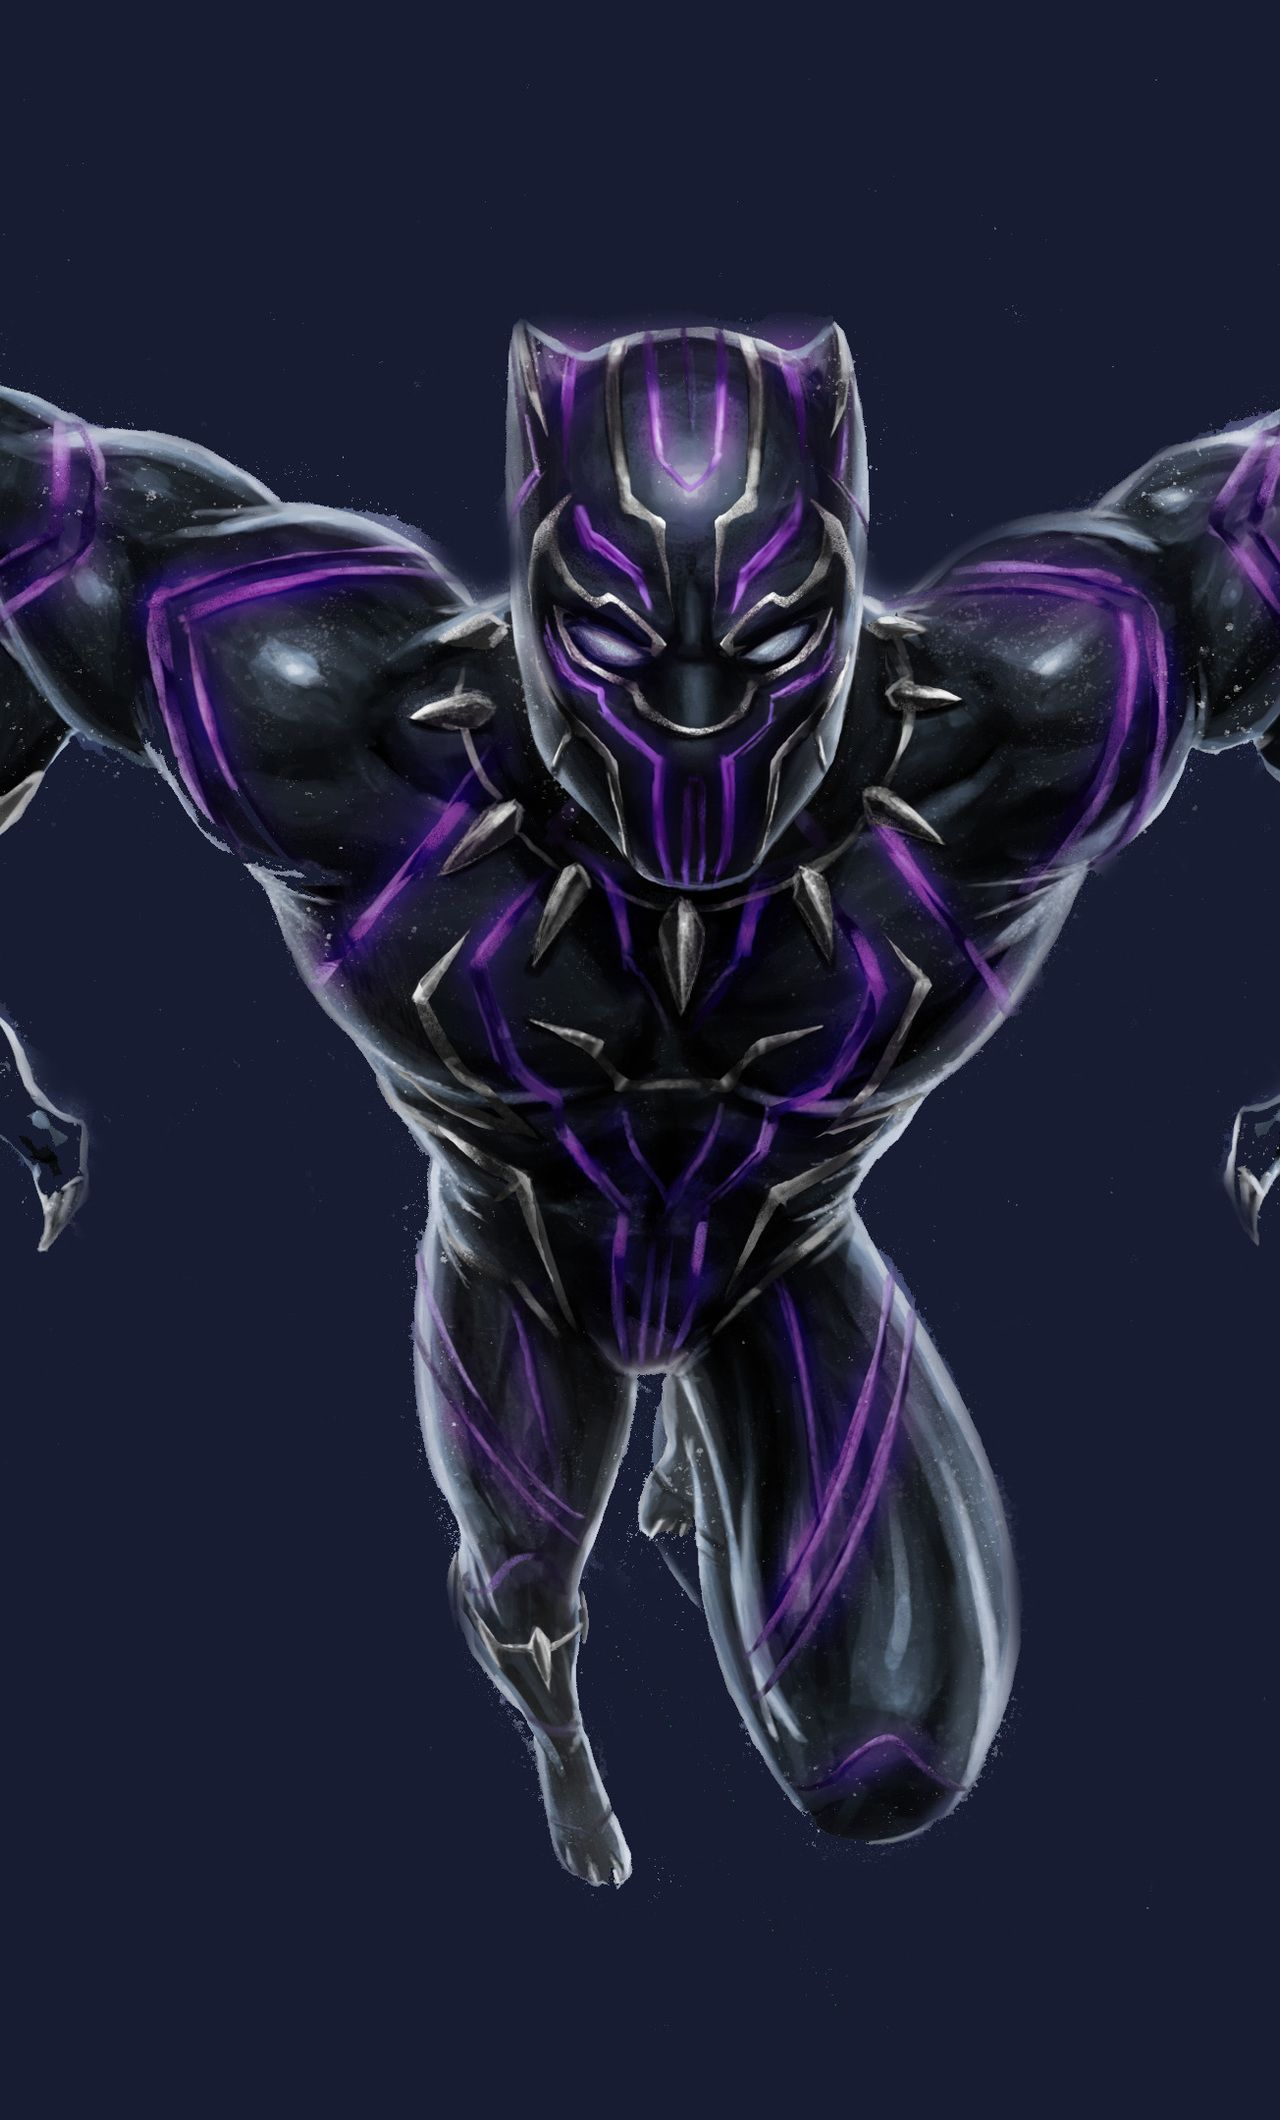 1280x2120 Black Panther Vibranium Suit Iphone 6 Hd 4k from